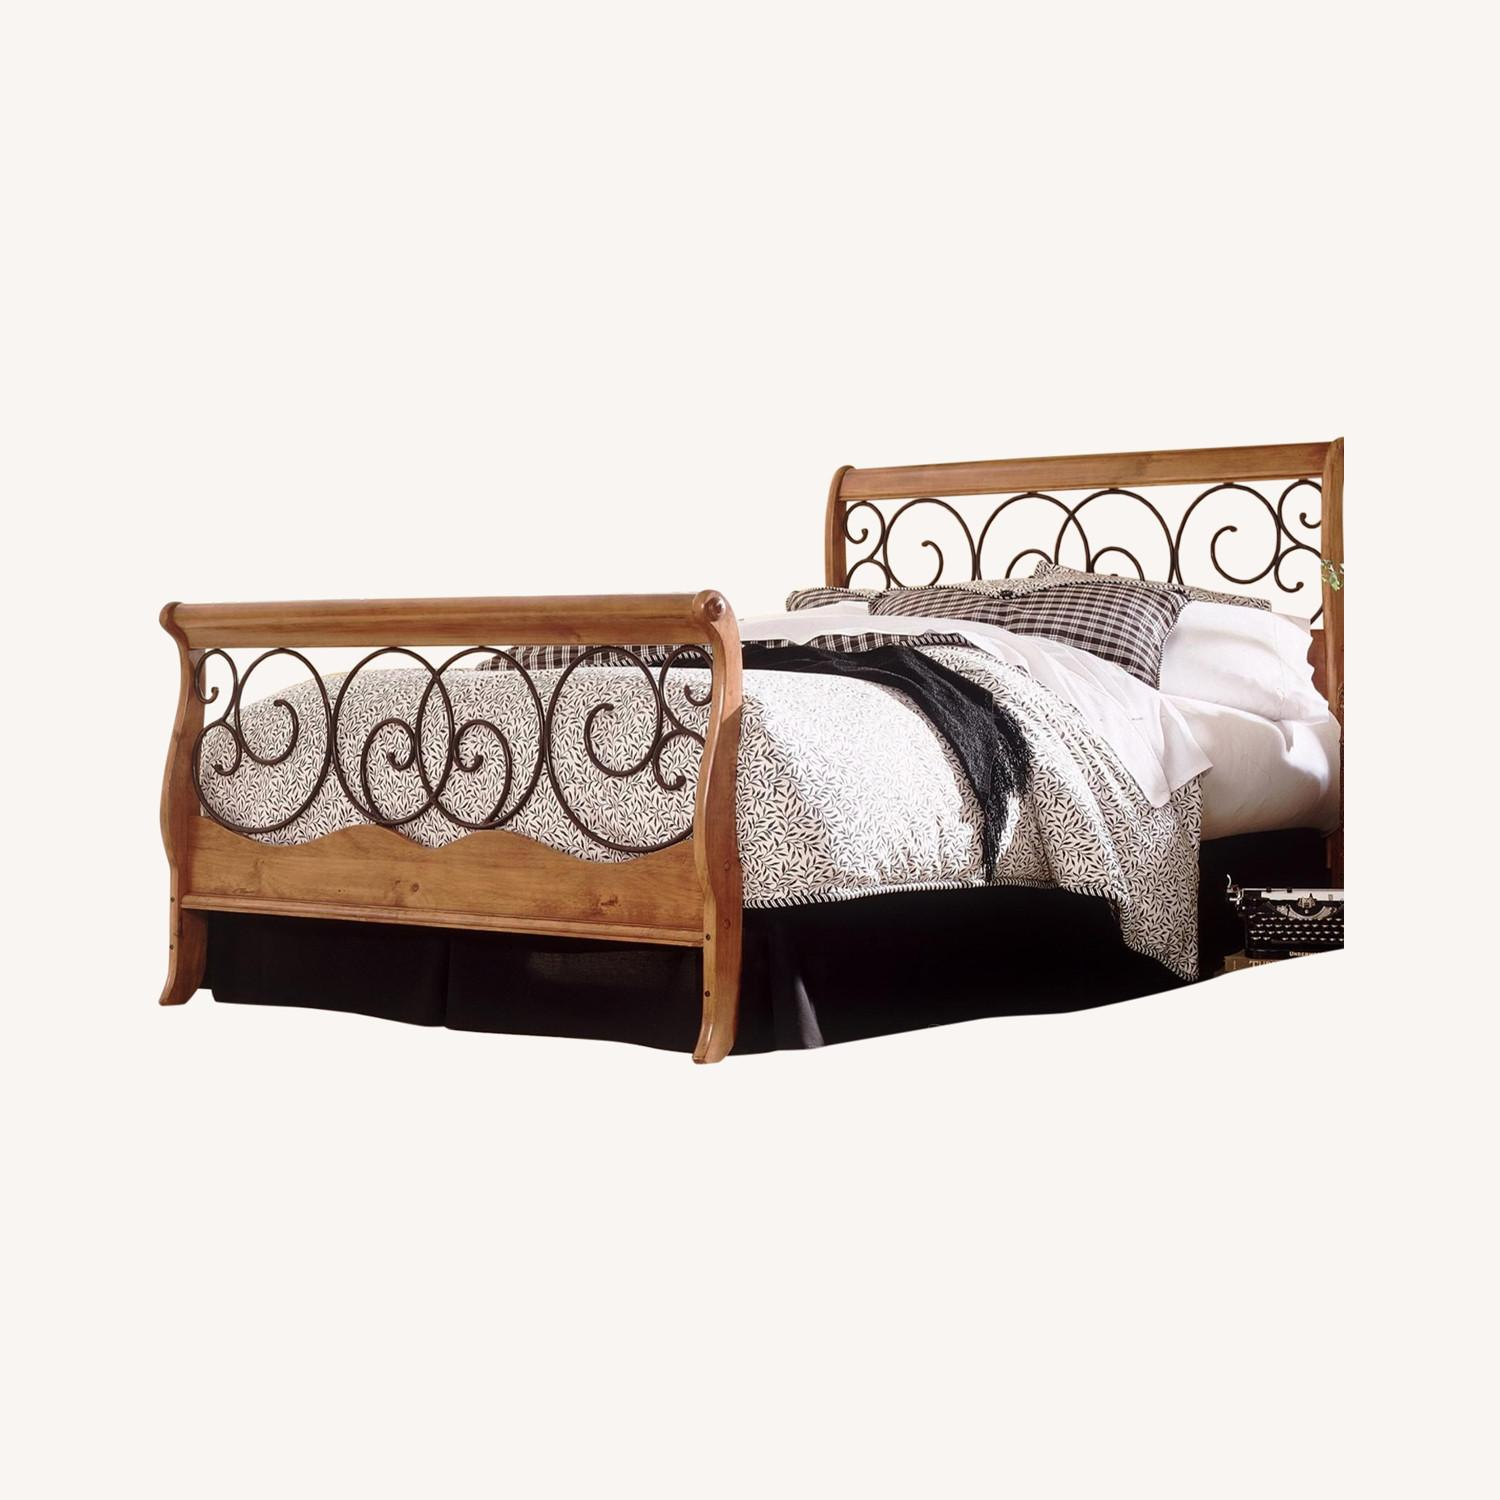 Wayfair Wood and Metal Sleigh Bed - image-0